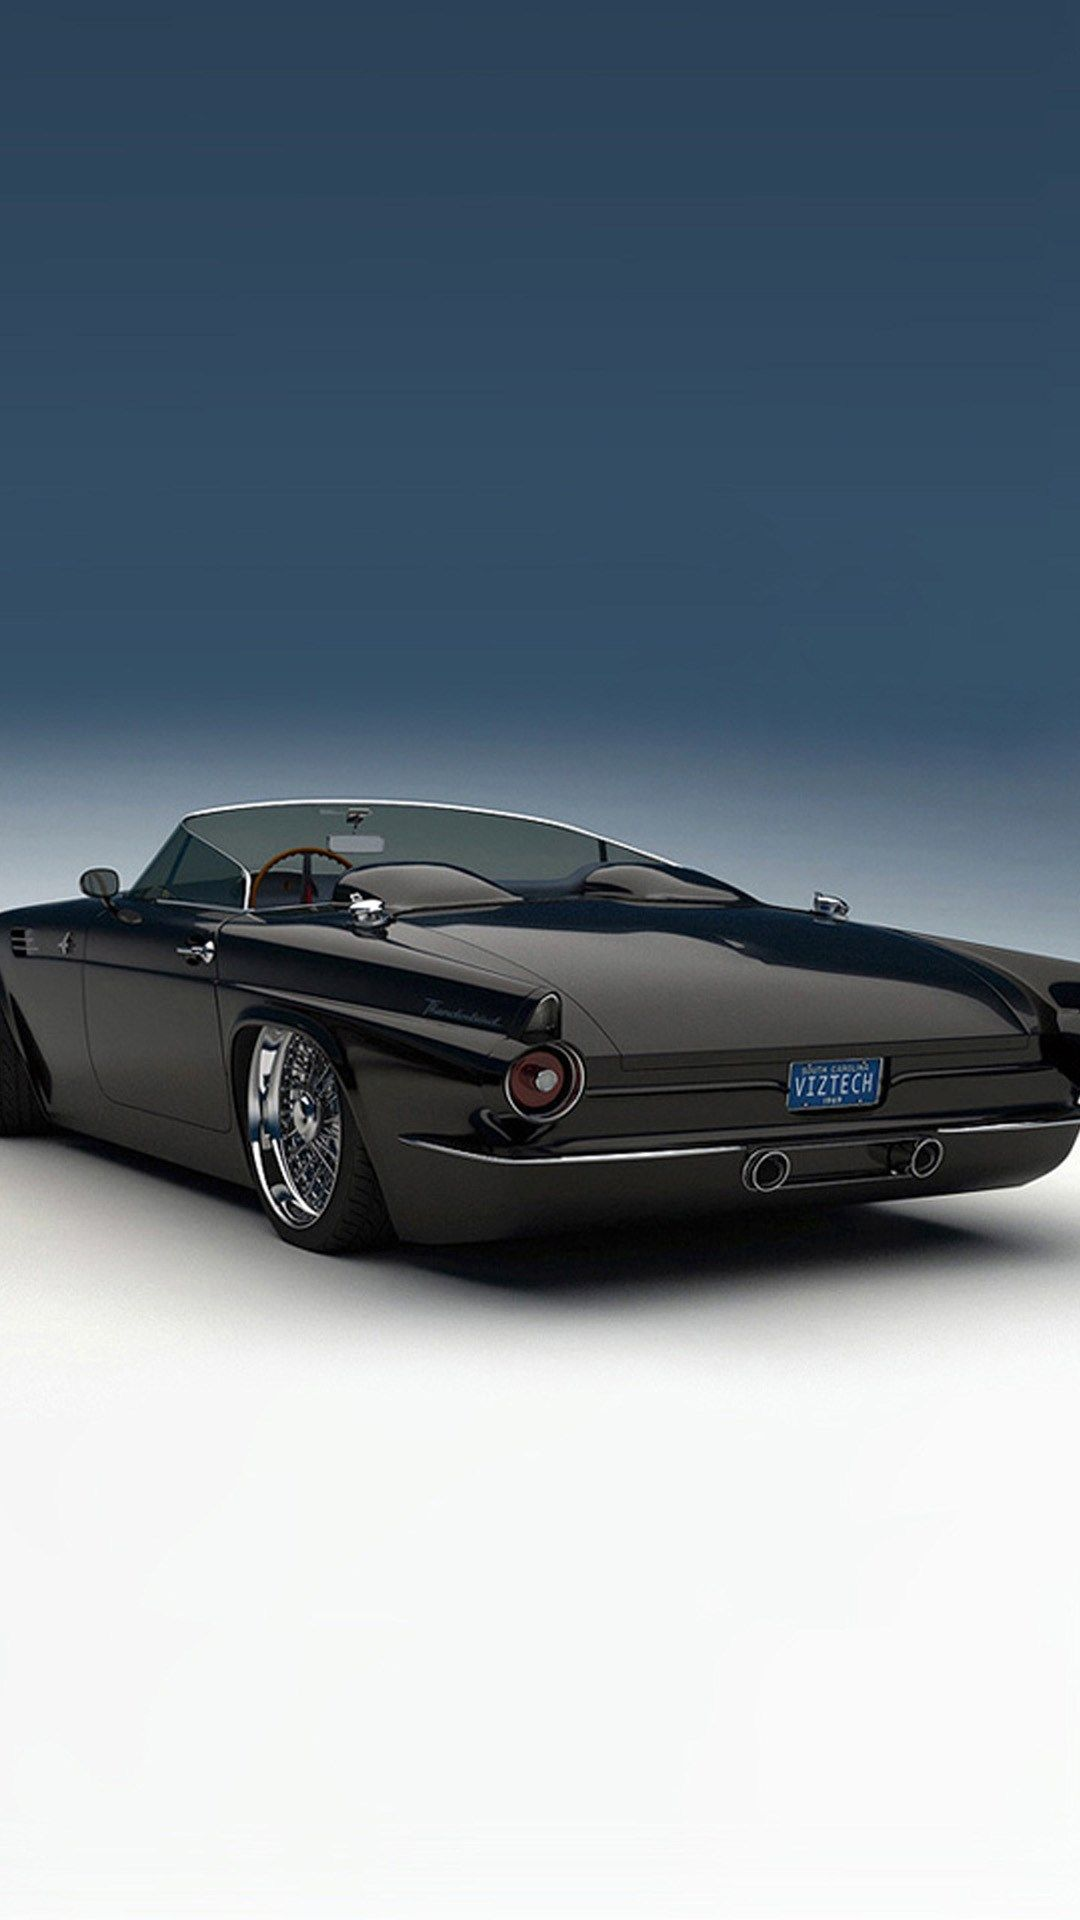 Ford Thunderbird 1955 Custom Hd Wallpaper Iphone